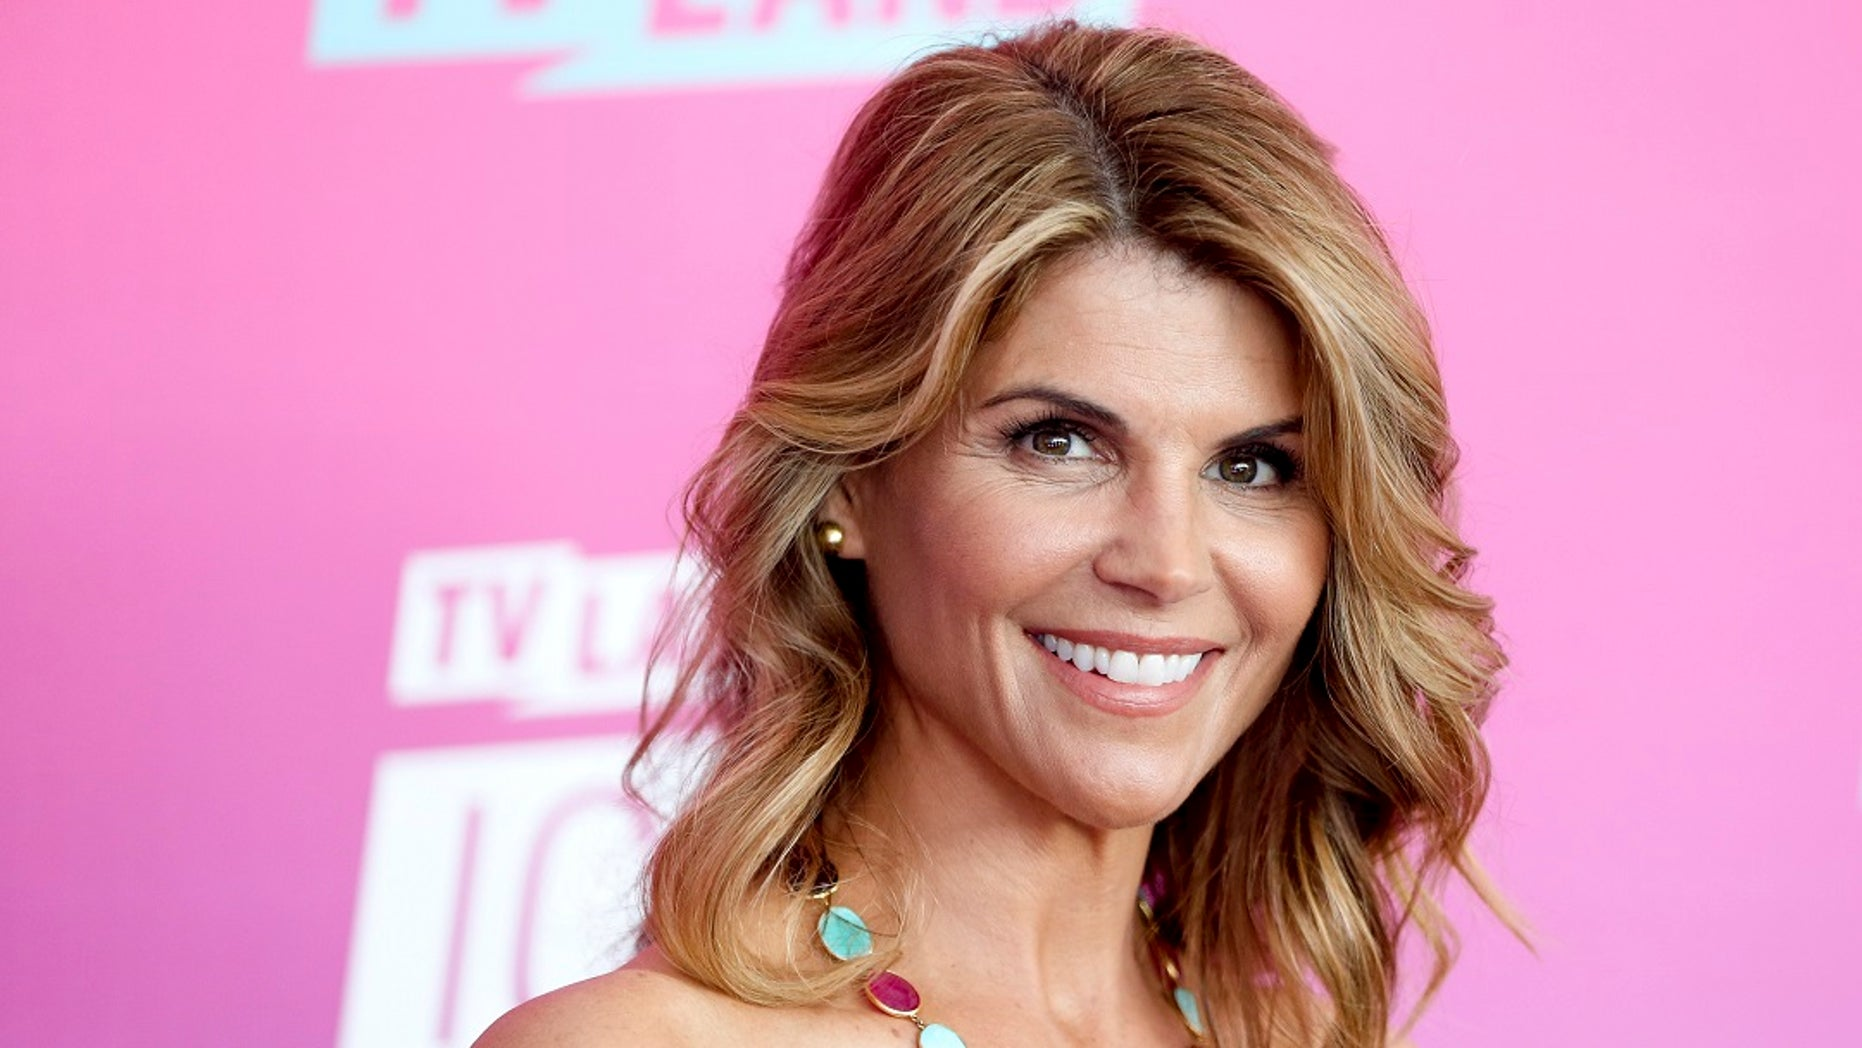 FILE - Actress Lori Loughlin arrives at the TV Land Icon Awards in Santa Monica, Calif., in an undated photo. (Photo by Rich Fury/Invision/AP, File)